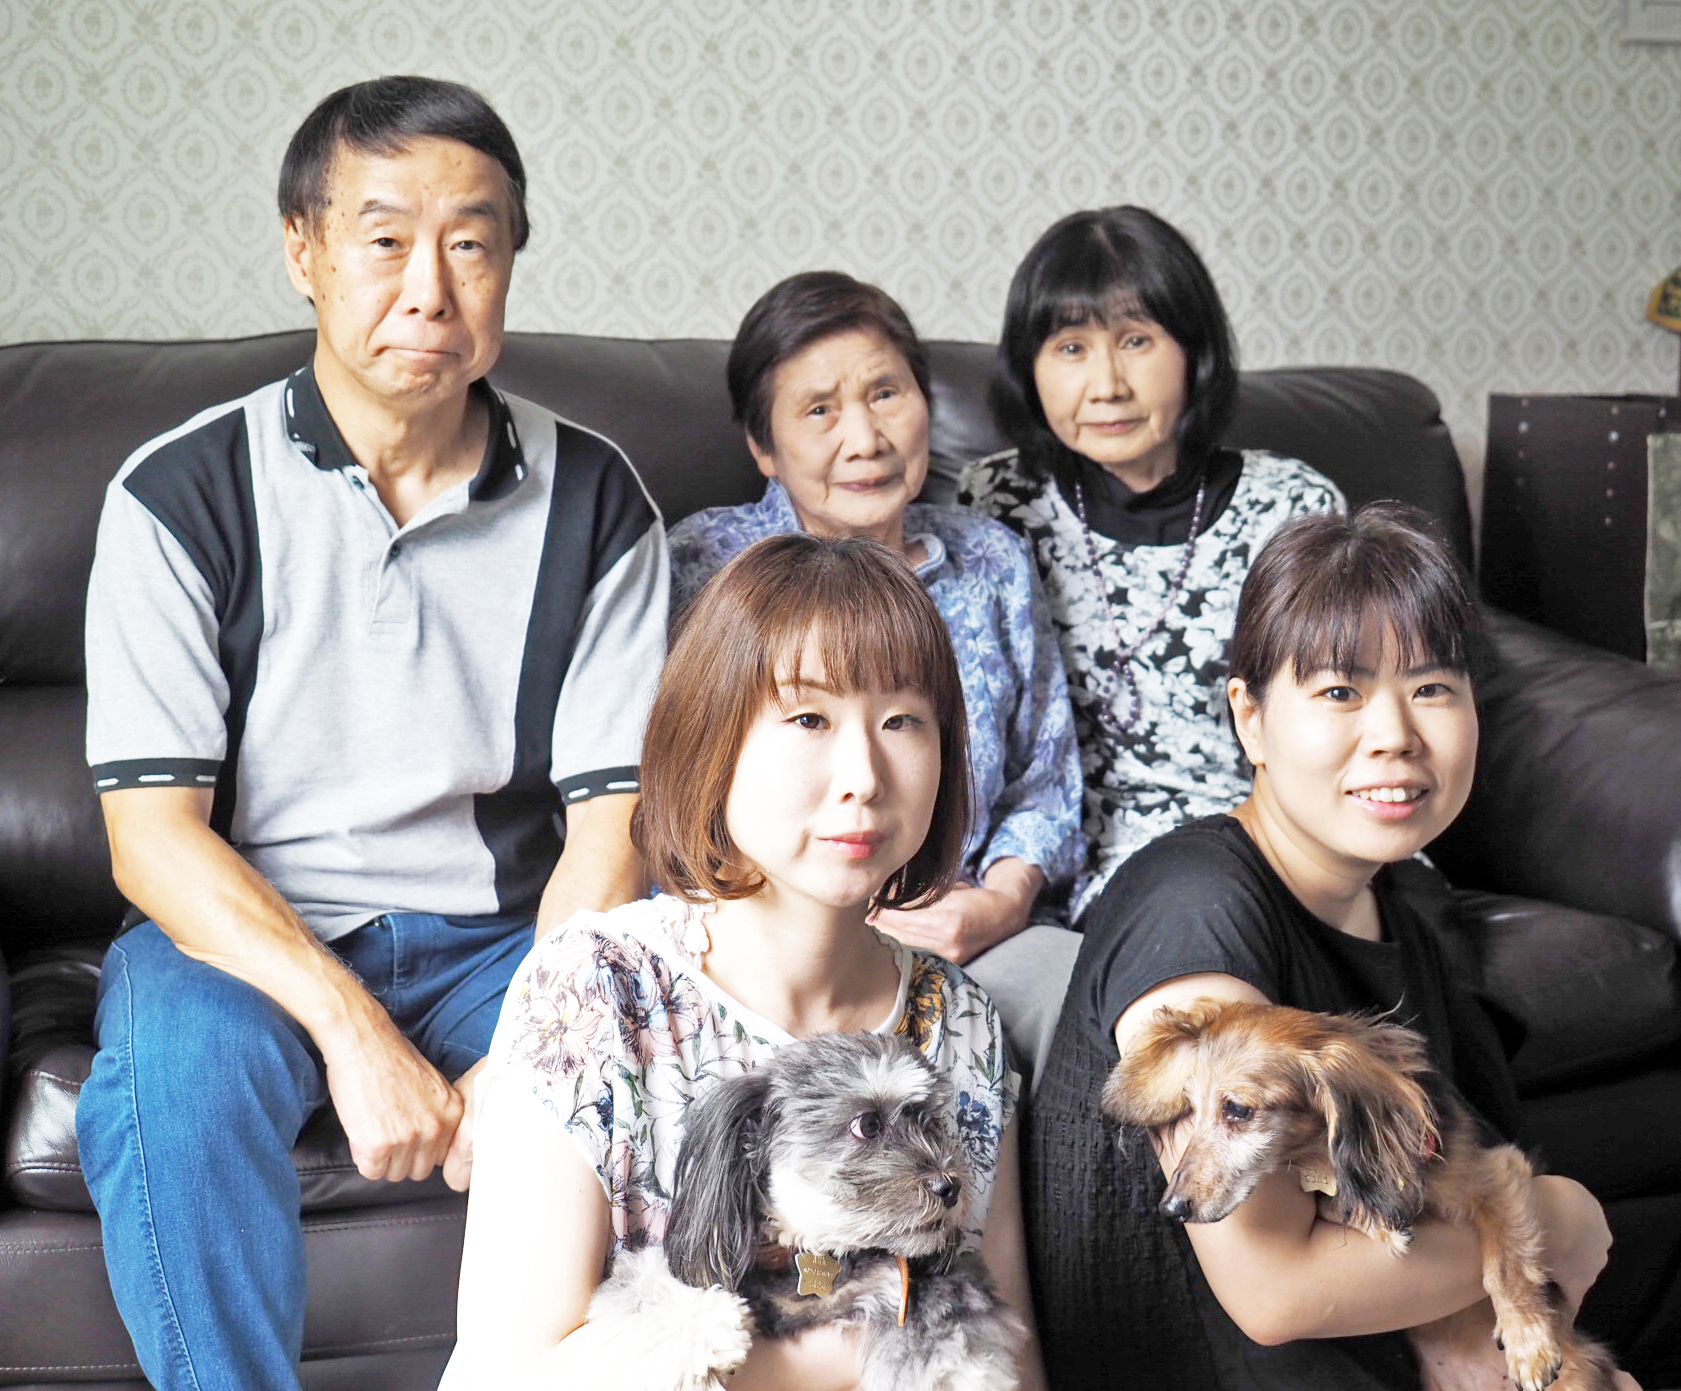 The Taguchi family includes (back row, from left) father Yuichi, grandmother Fujie, mother Chiyoko and, in the front row, sisters Reina and Ai. Reina holds Shishimaru and Ai holds the late Minnie, who was also an adopted pet.   AI TAGUCHI